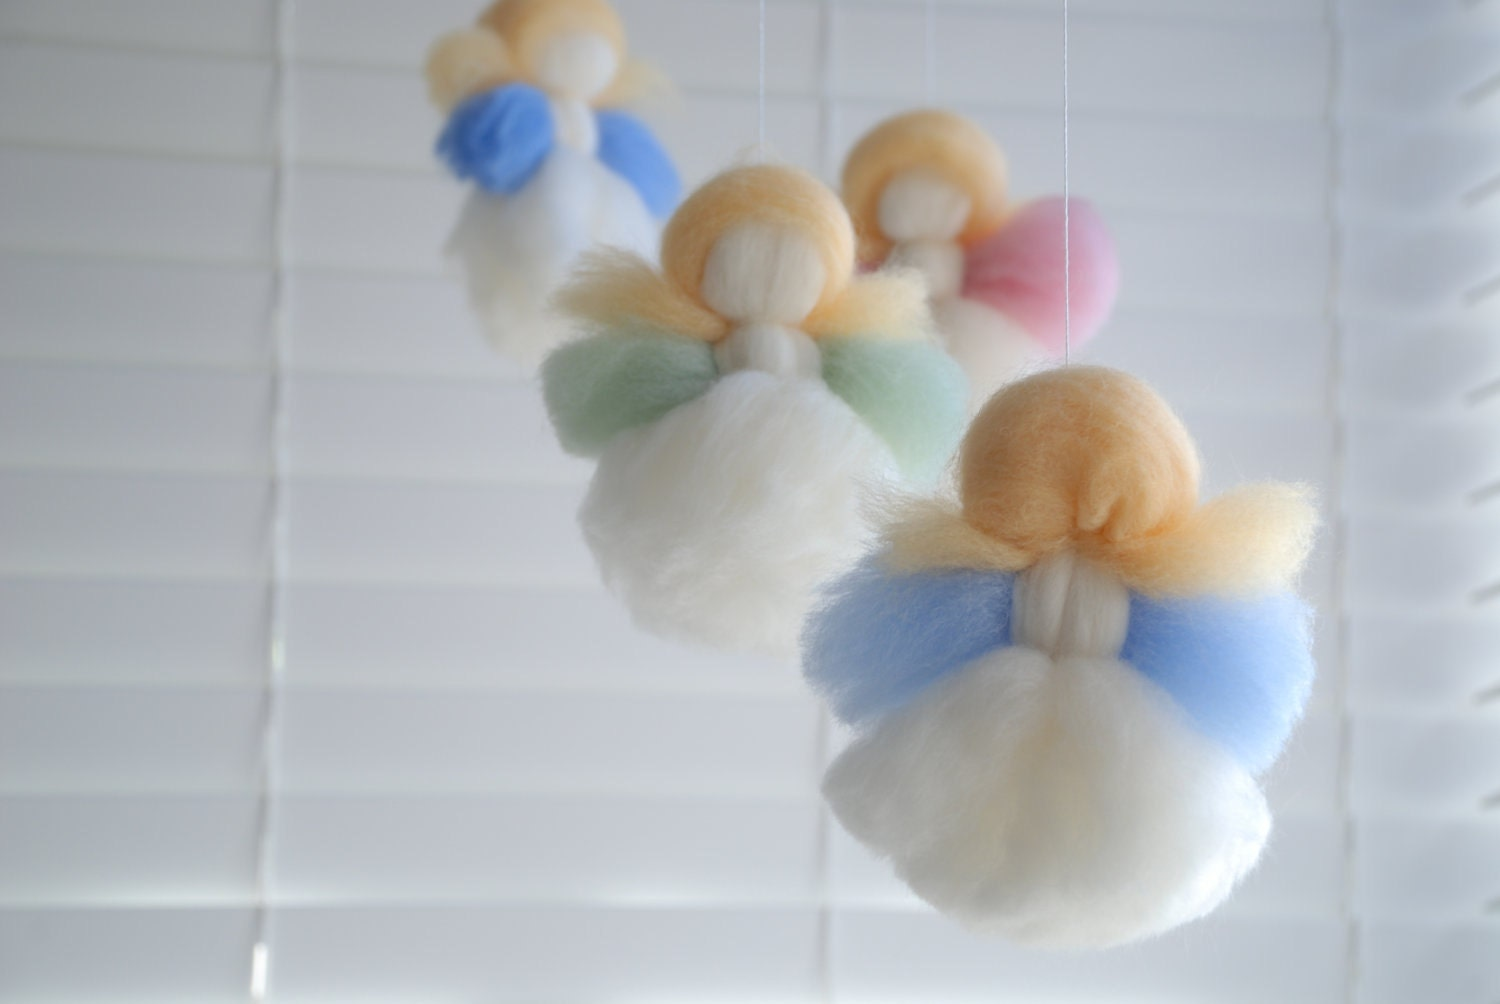 Baby Mobile for Nursery, 'Five Little Dumplings'  Angel Mobile - Handmade & Natural Materials in Pastel Rainbow Colours Waldorf - MerinoAngel